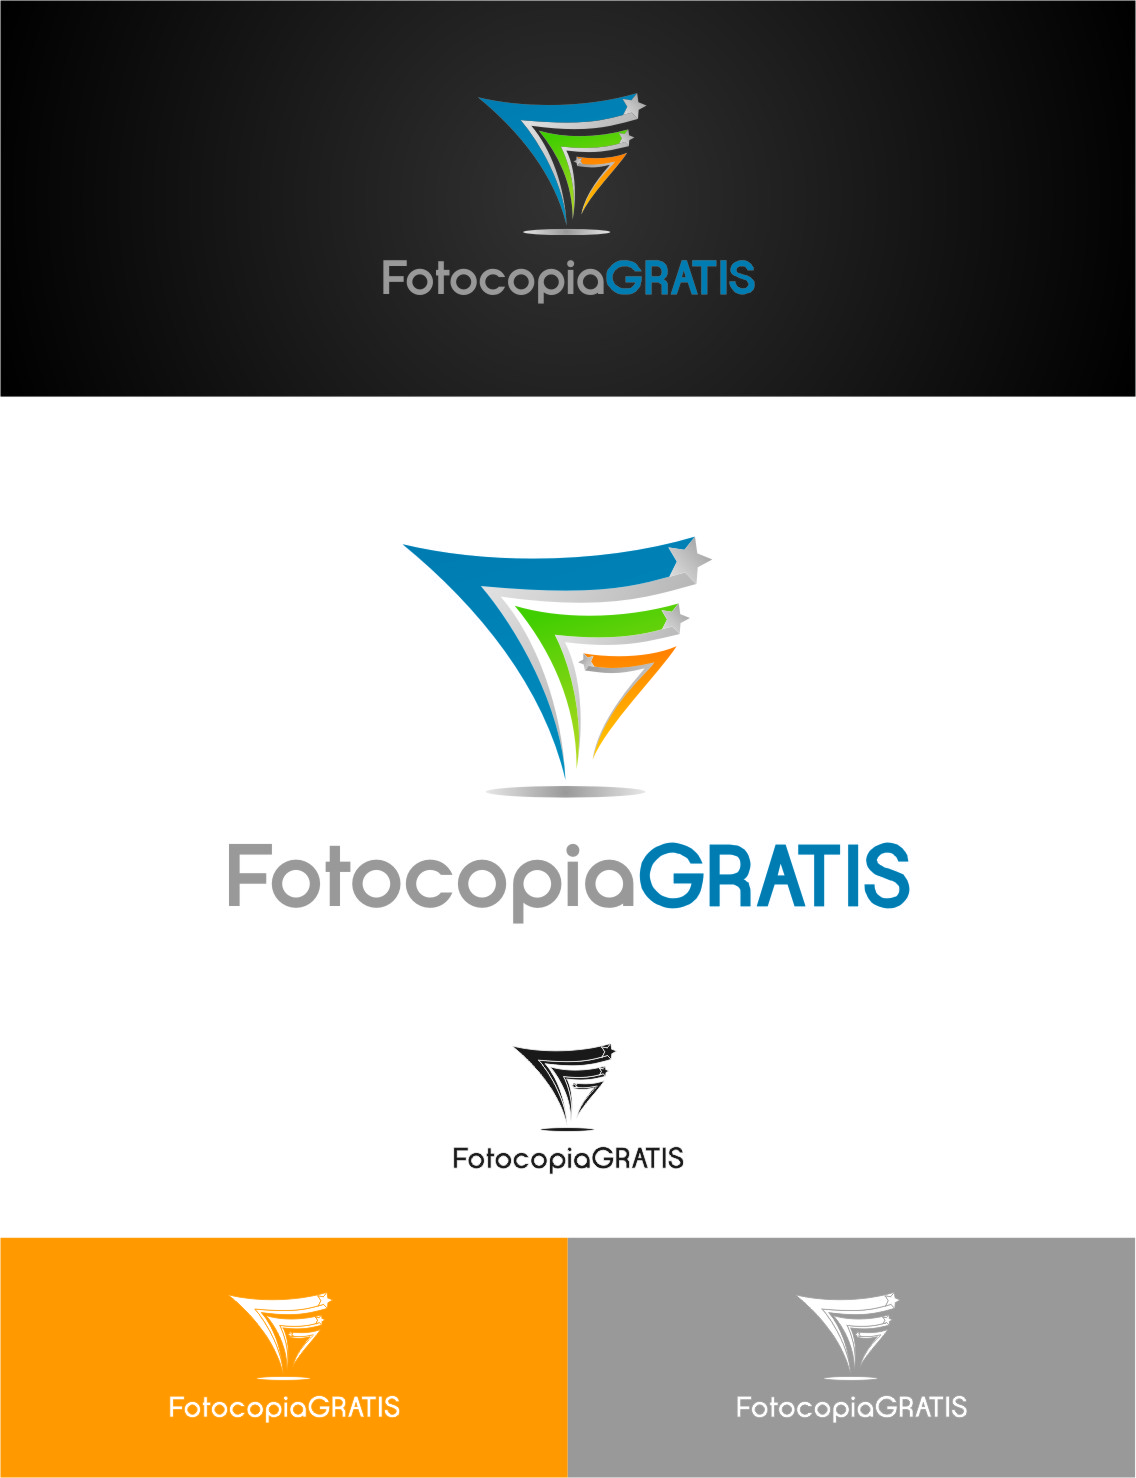 Logo Design by RasYa Muhammad Athaya - Entry No. 259 in the Logo Design Contest Inspiring Logo Design for Fotocopiagratis.